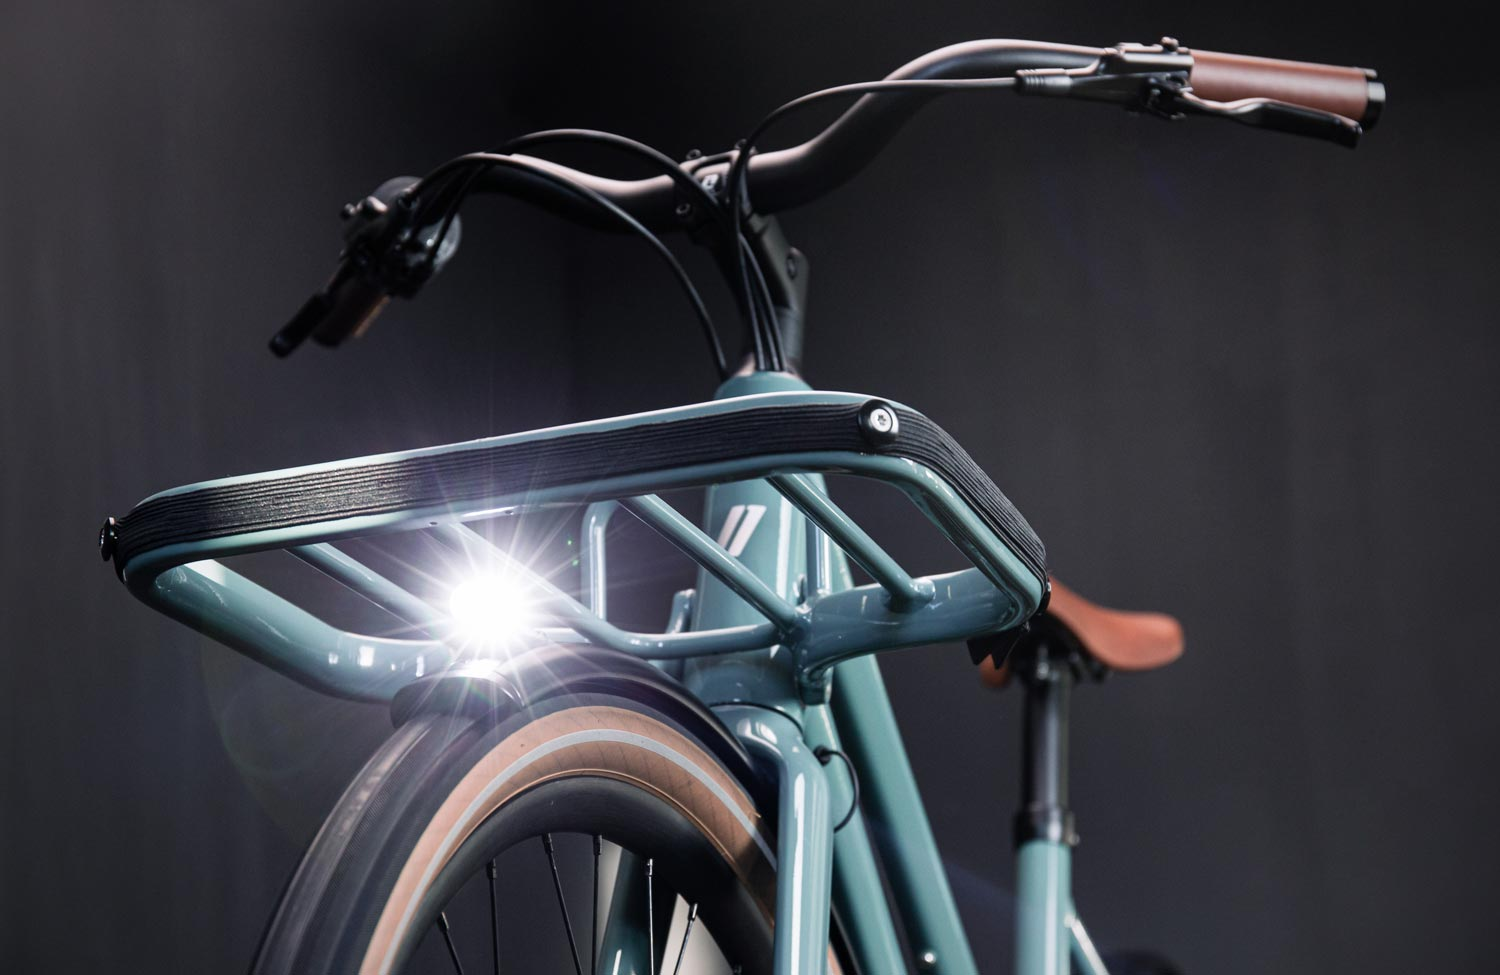 Functional and attractive: the new Schindelhauer e-bikes Emilia and Emil